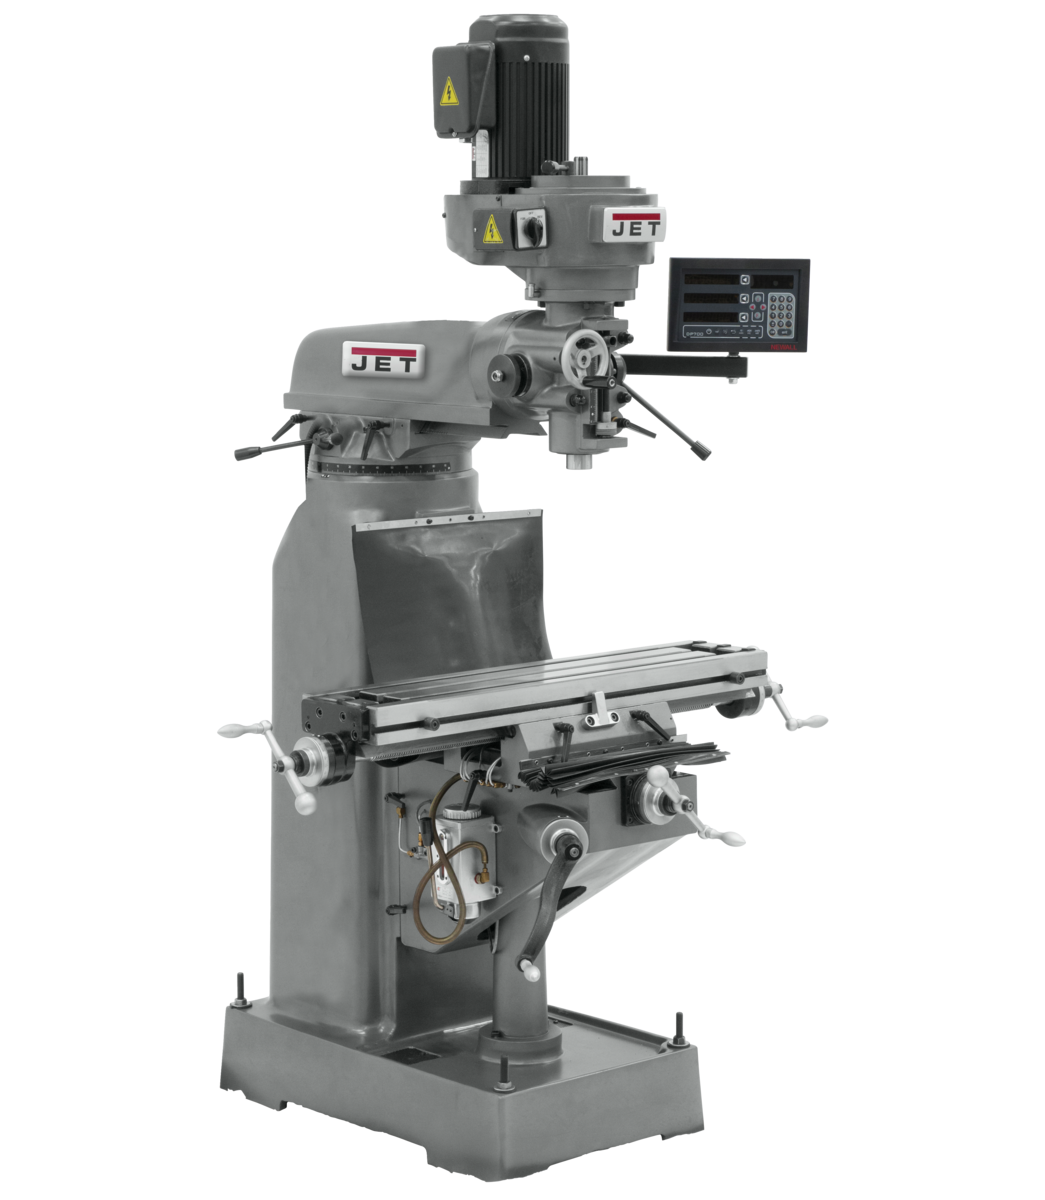 JVM-836-3 Mill With 3-Axis Newall DP700 DRO (Quill) With X and Y-Axis Powerfeeds